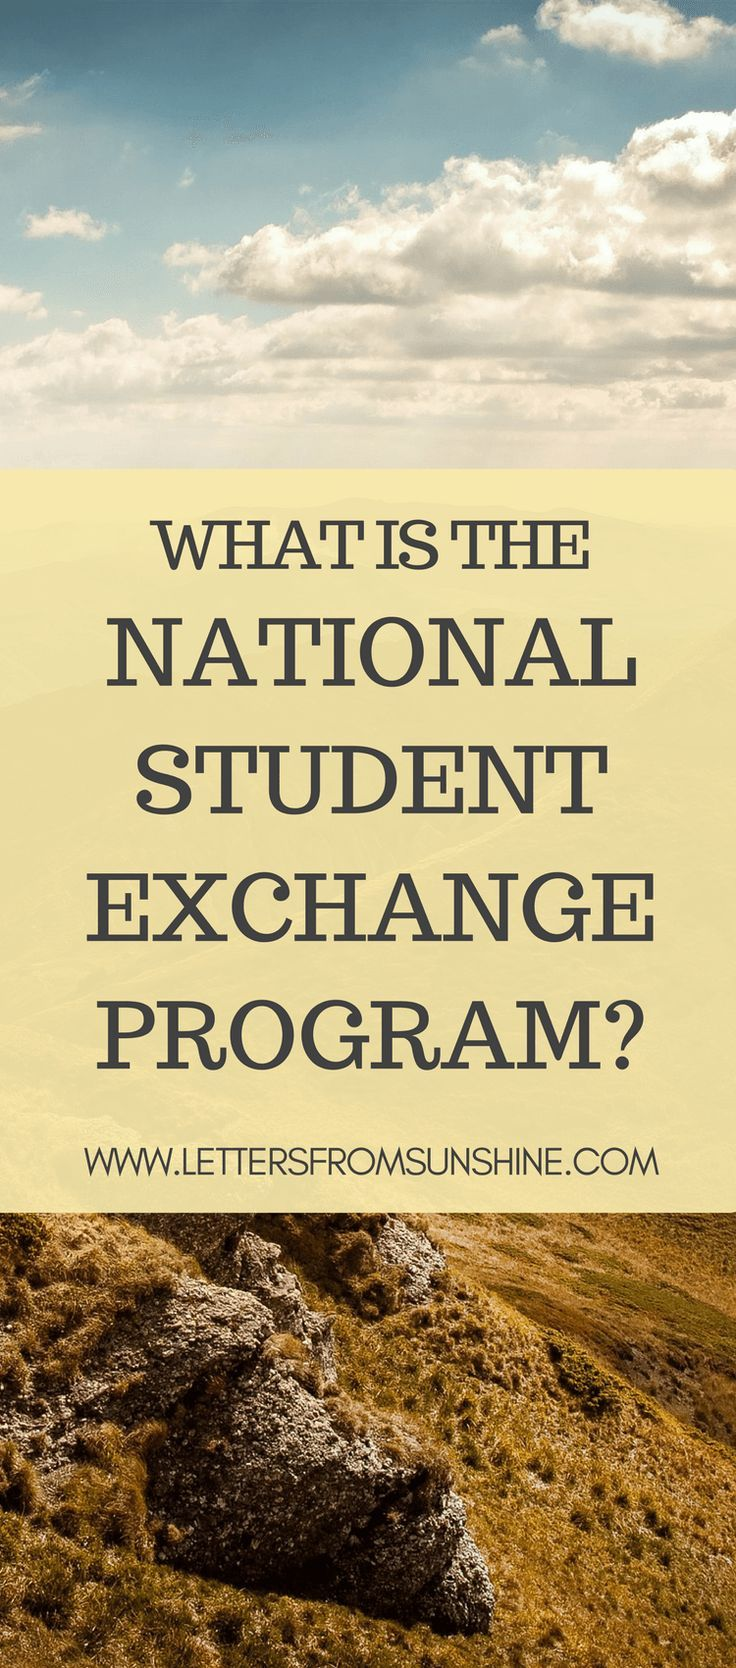 What is the National Student Exchange program? | Ever want to study at an out-of-state college for a cheaper price? Learn about the National Student Exchange program, which allows students to do just that.